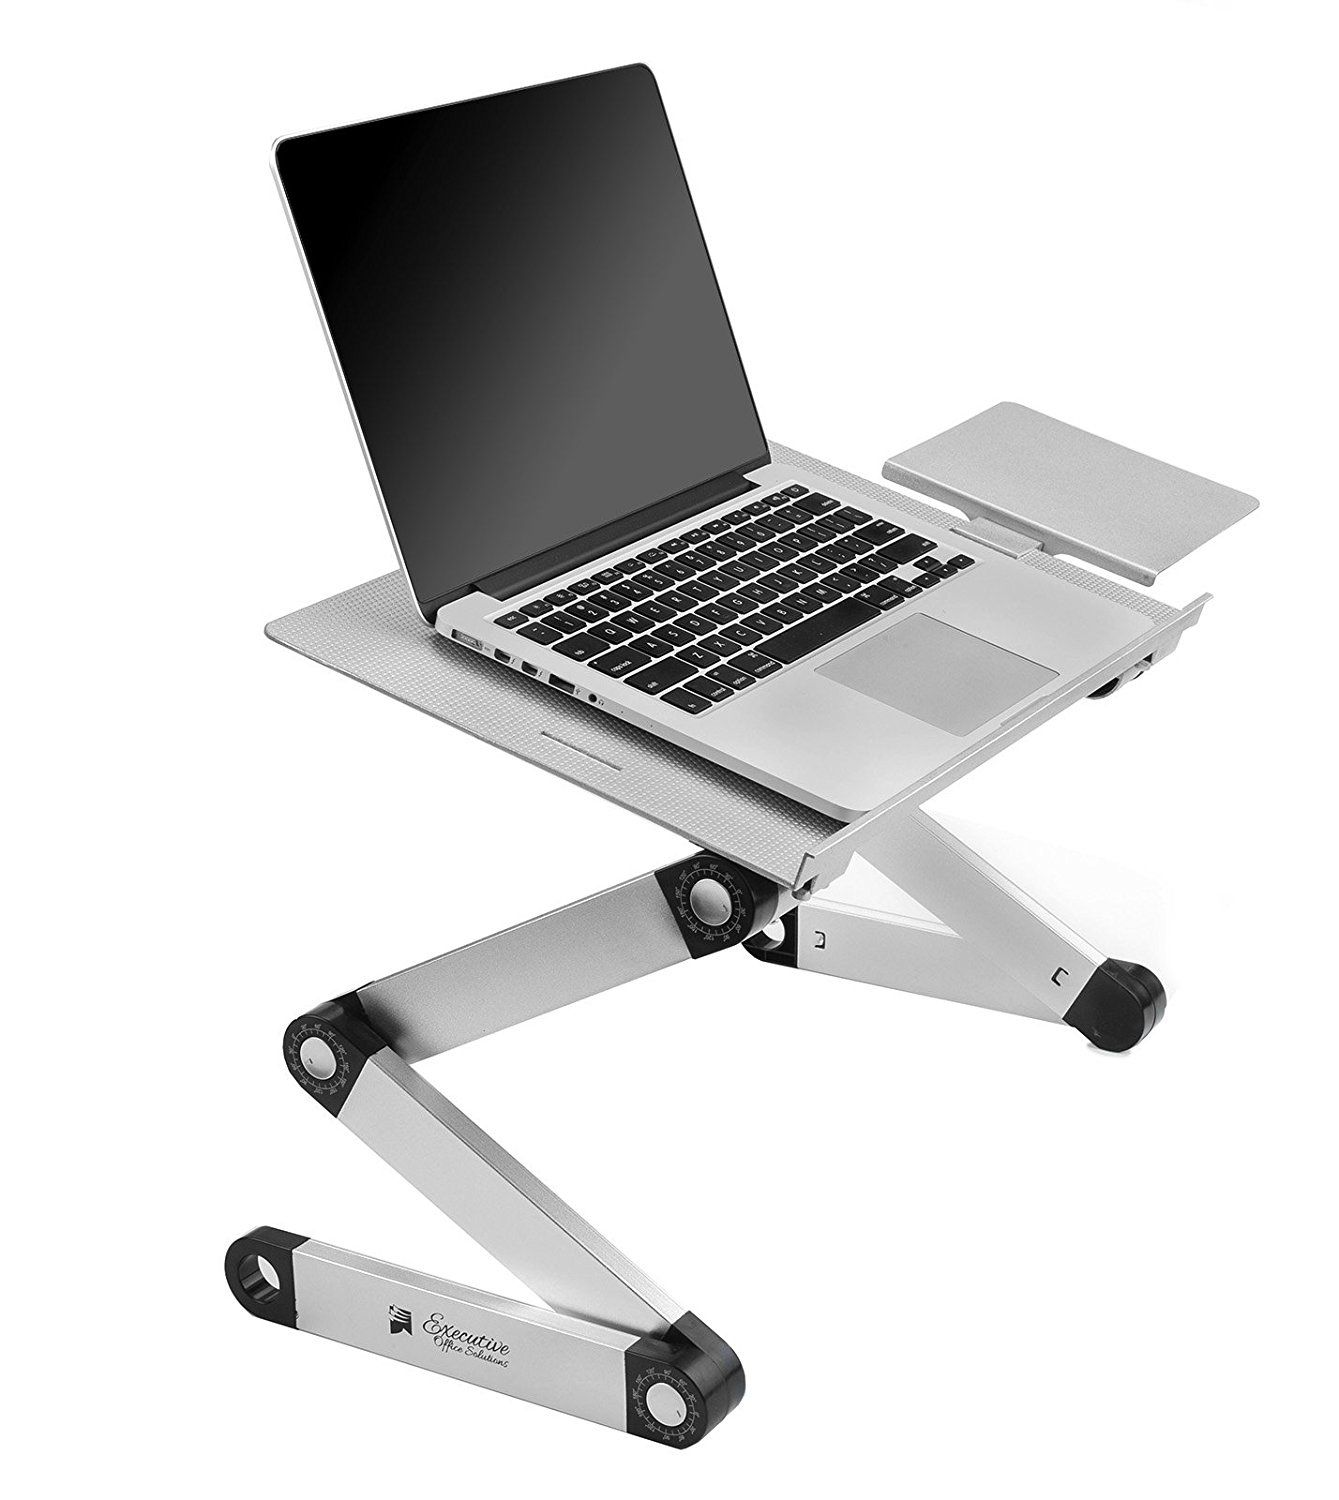 vented design laptop to amazon multipurpose electronics in dual desk portable ergonomics layer up furinno table dp tabletop adjustable